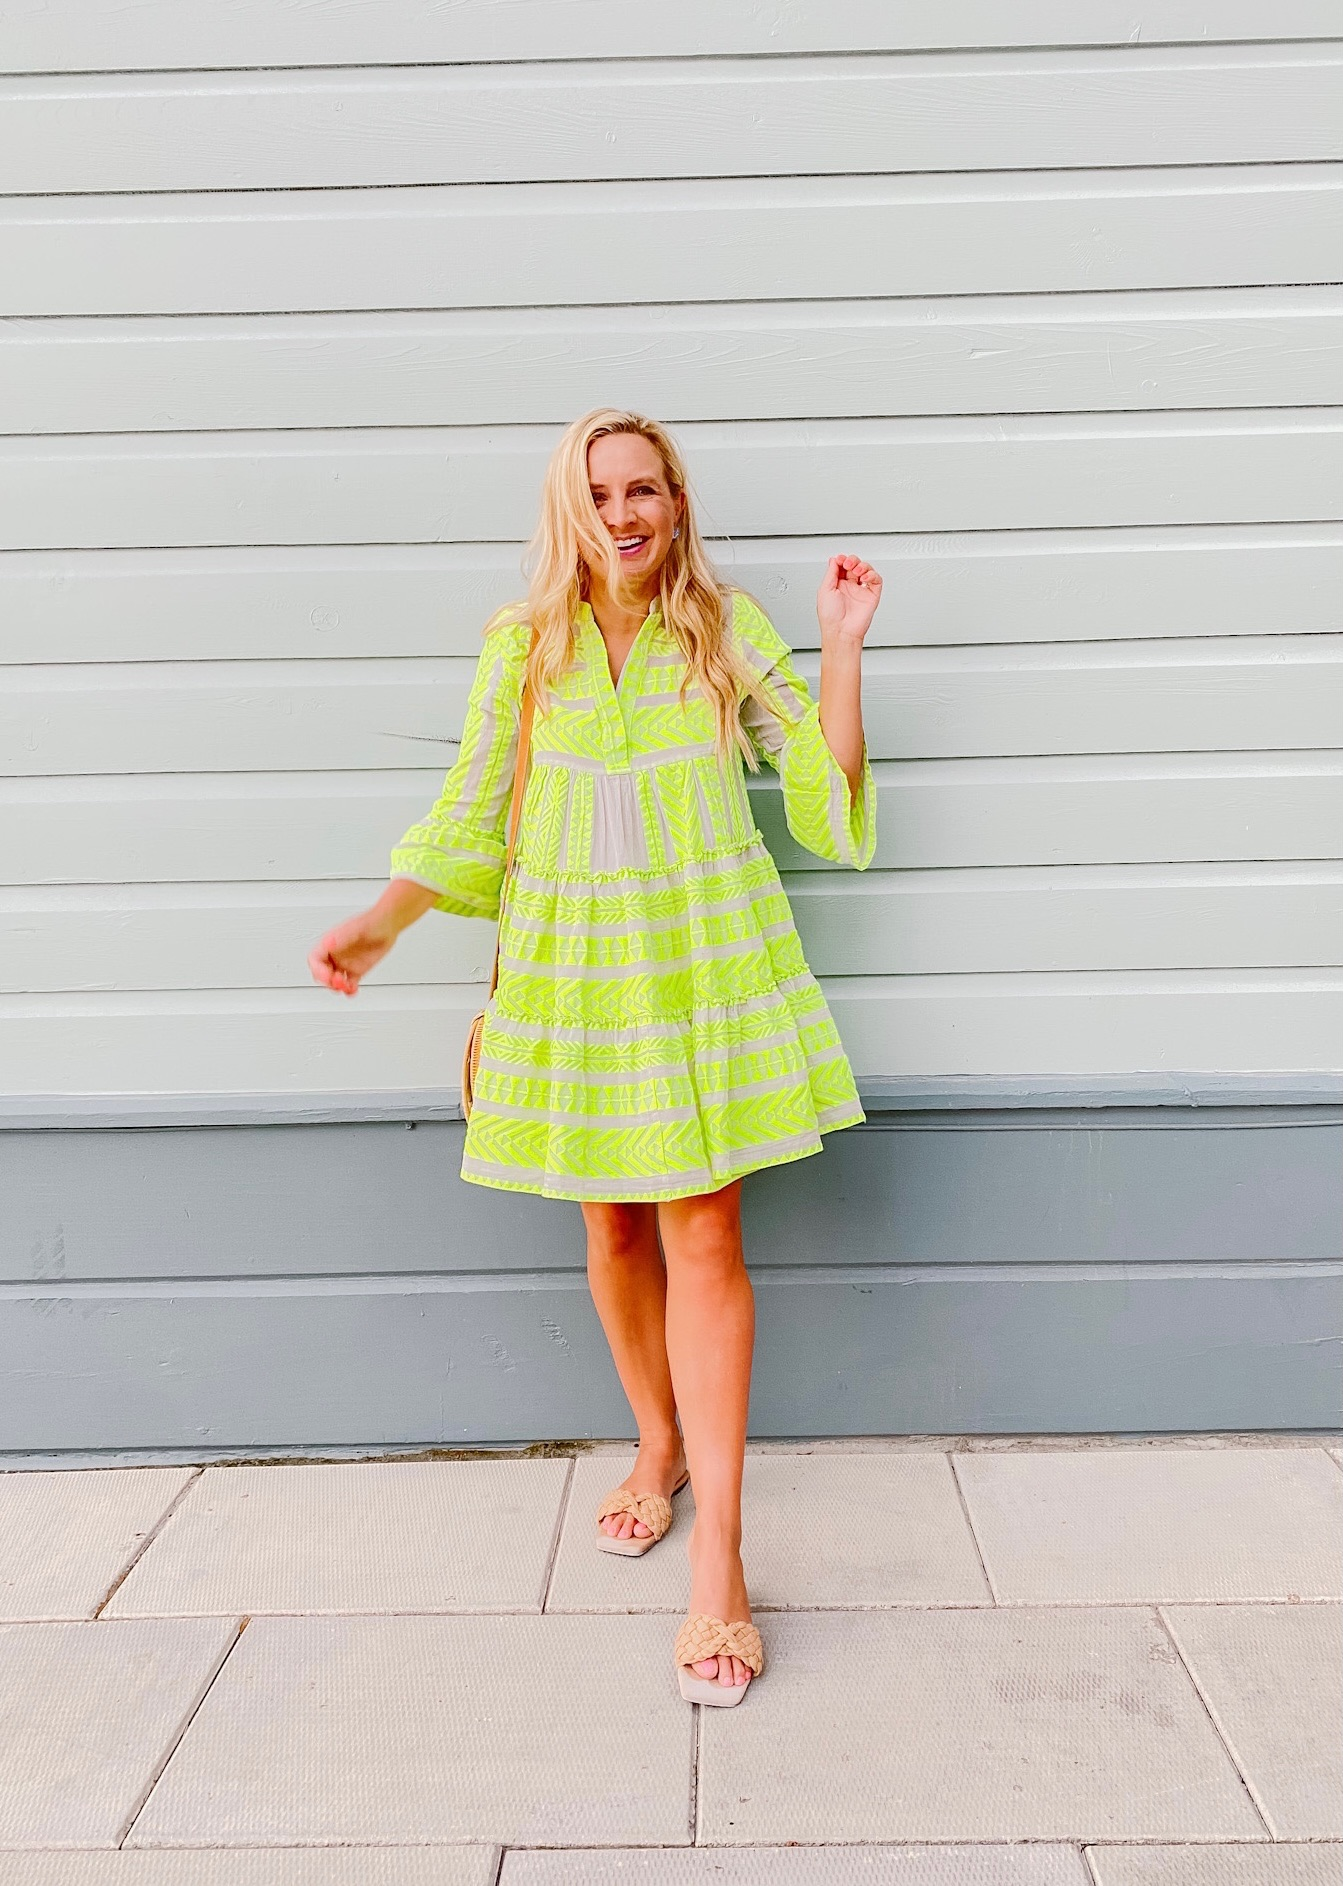 Summer Dress by popular Houston fashion blog, The House of Fancy: image of a woman wearing a yellow embroidered button front and bell sleeve dress and braided strap sandals.